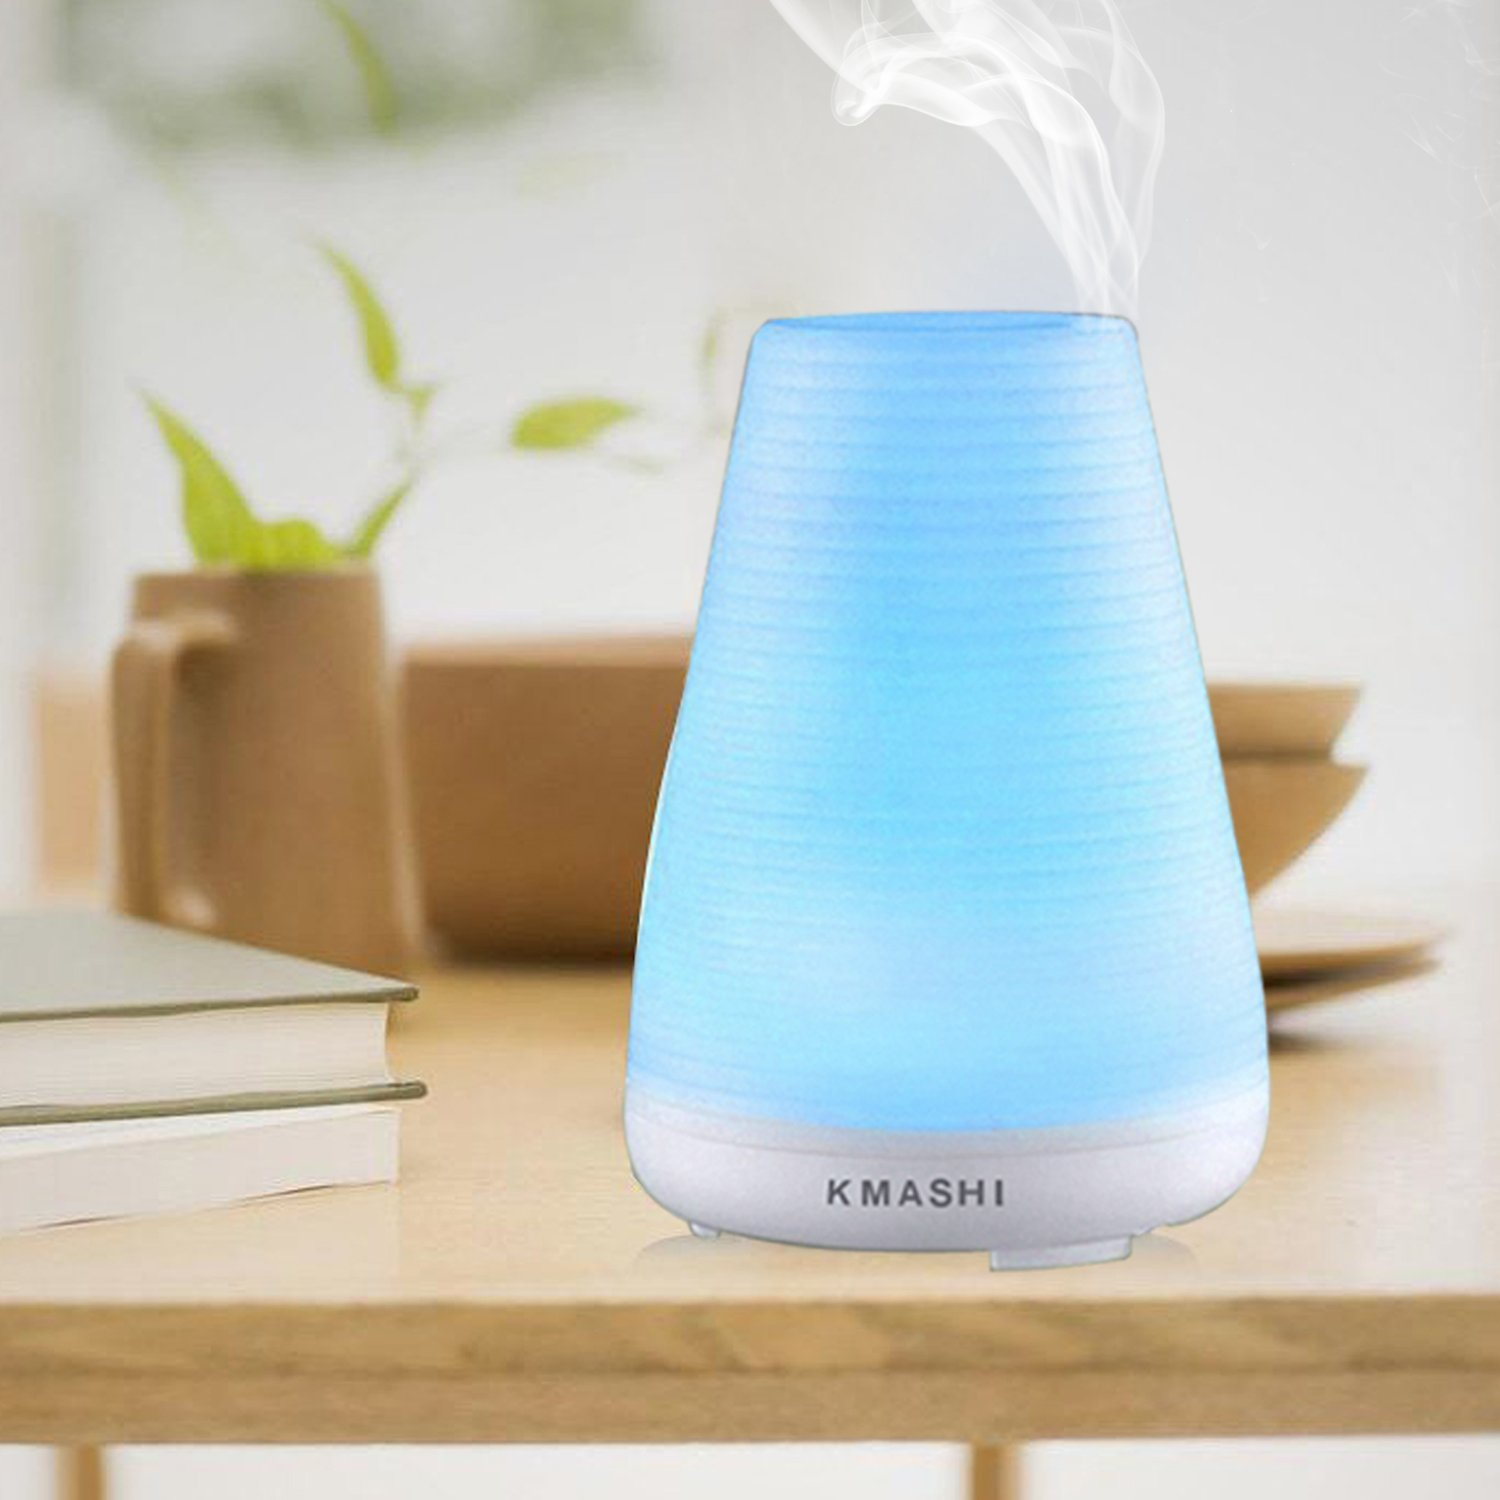 KMASHI Aromatherapy Essential Oil Diffuser,100ml Ultrasonic Air Humidifier with Adjustable Mist Mode, 7 Color Changing Lights, and Waterless Auto Shut-off Function